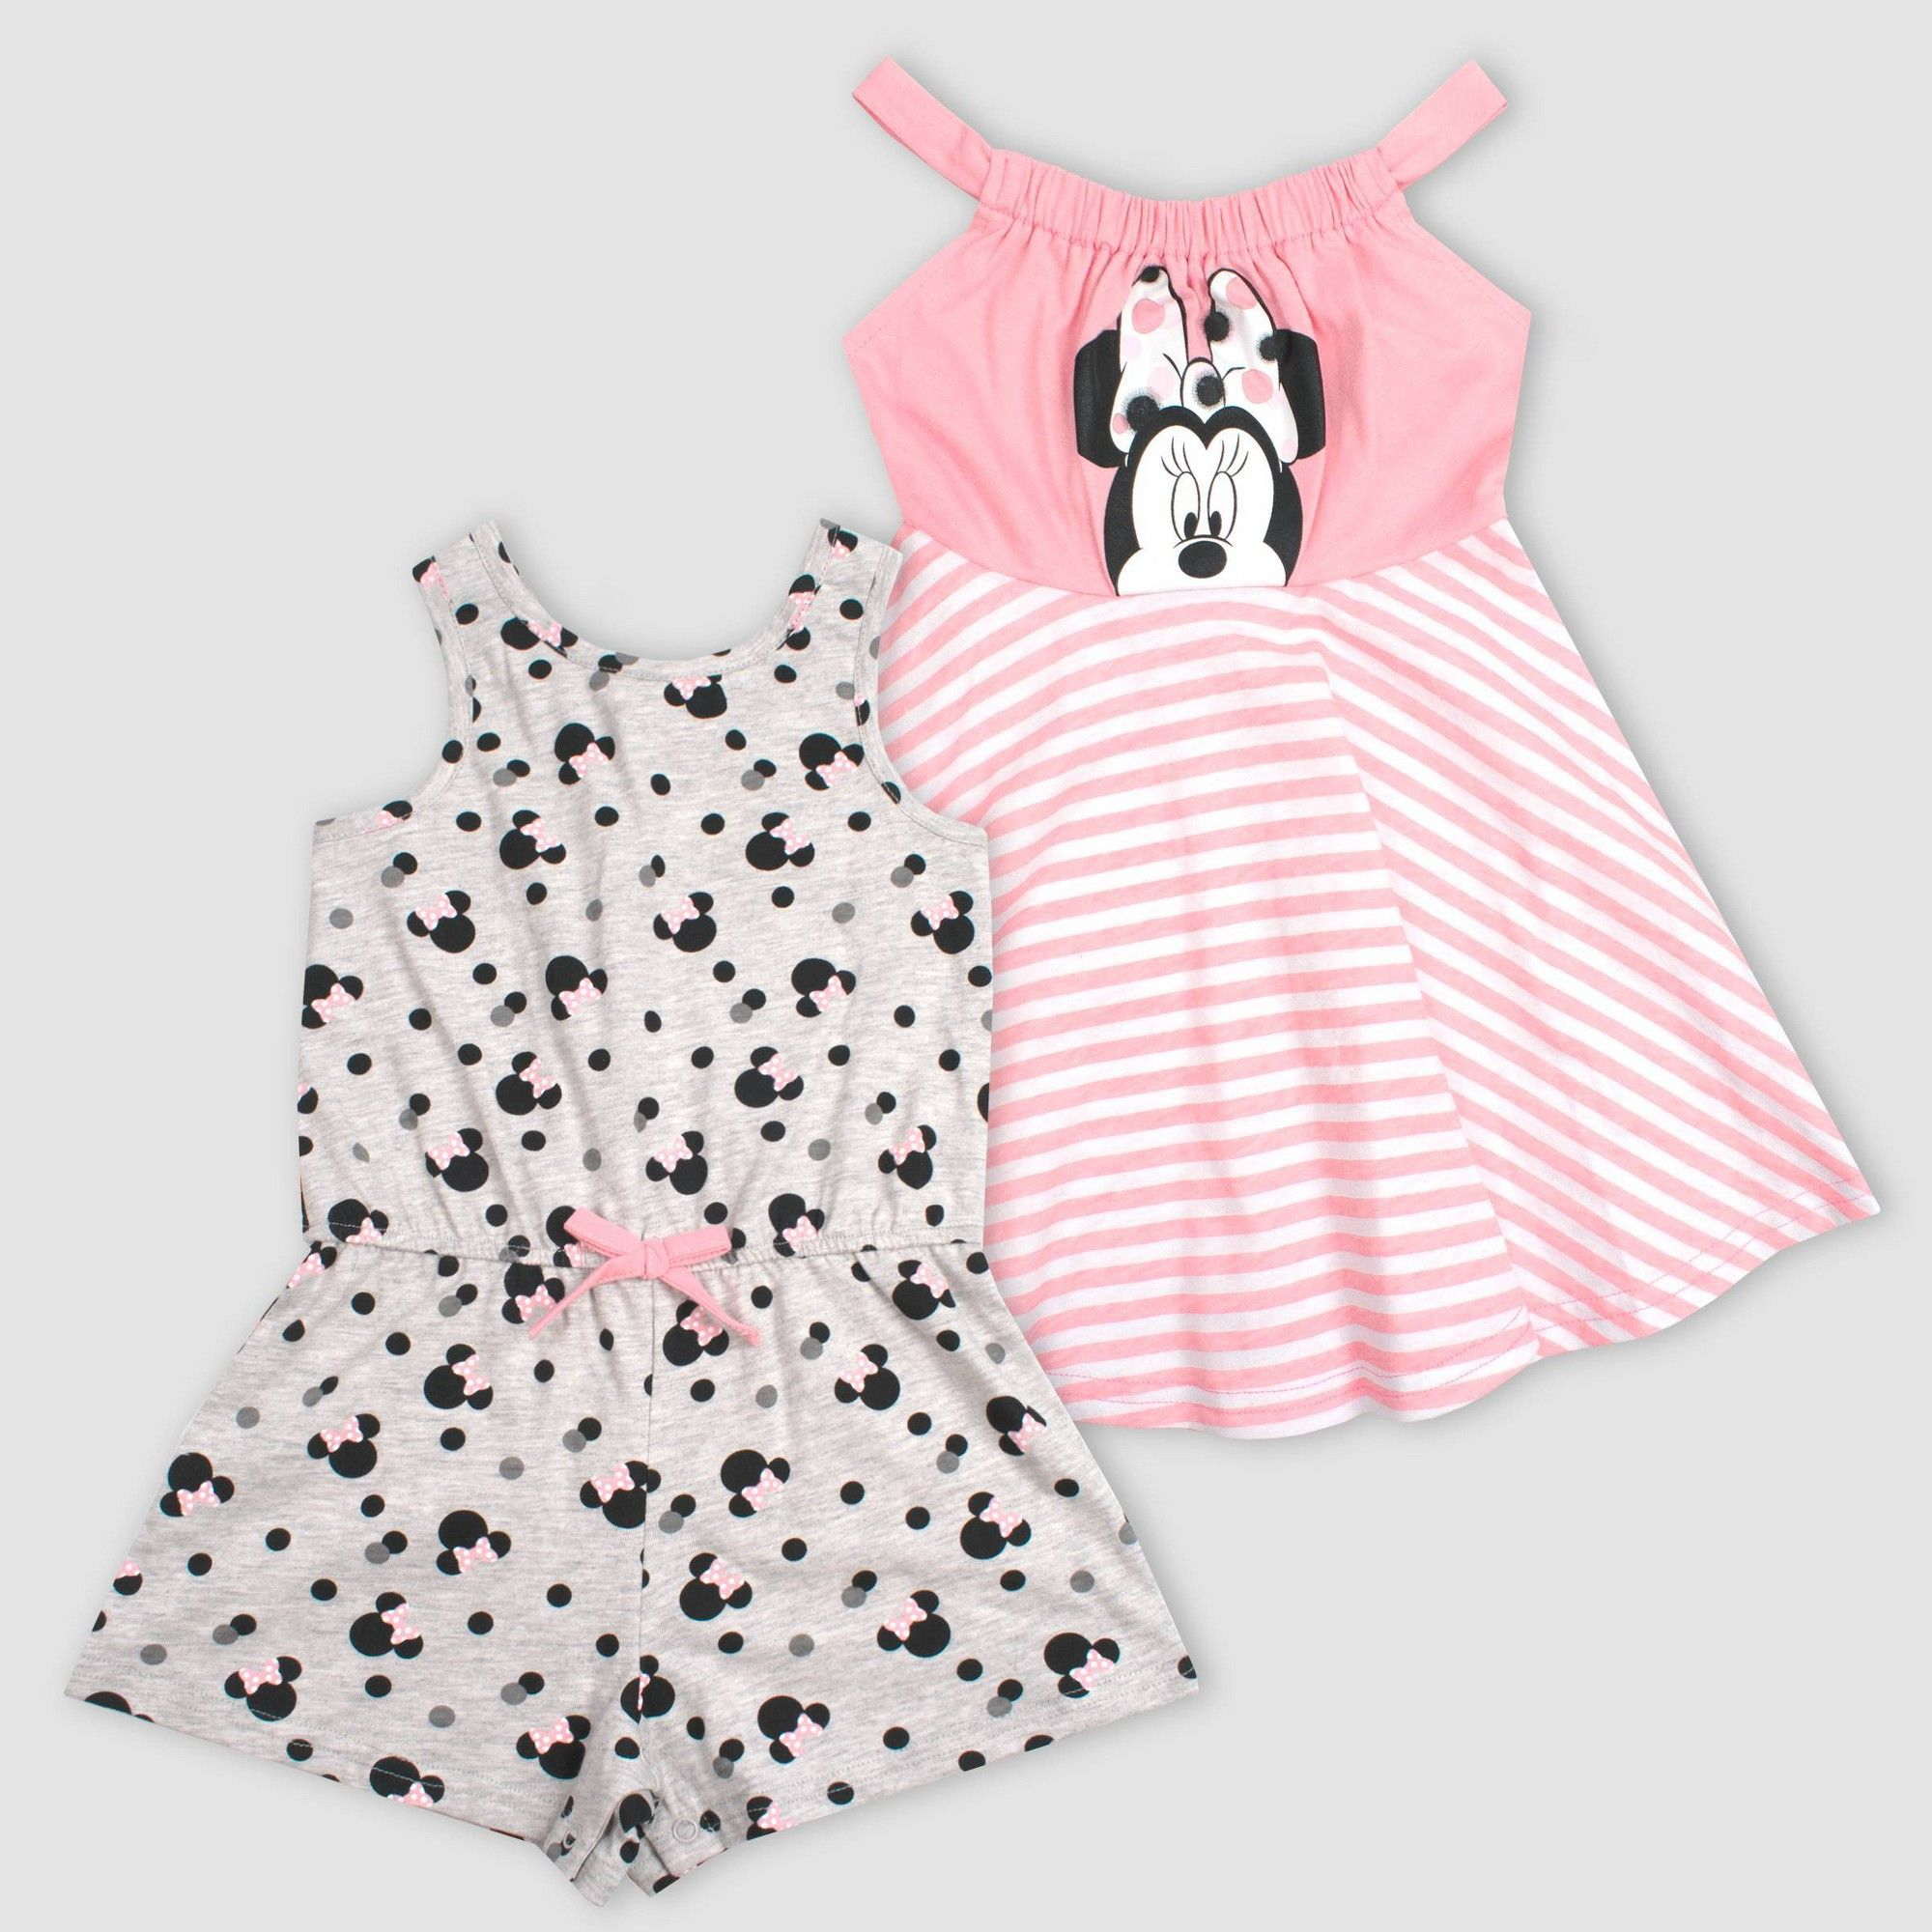 Baby Toddler Disney Romper One-piece Boy Girl Fancy Dress Costume Suit Out  fit